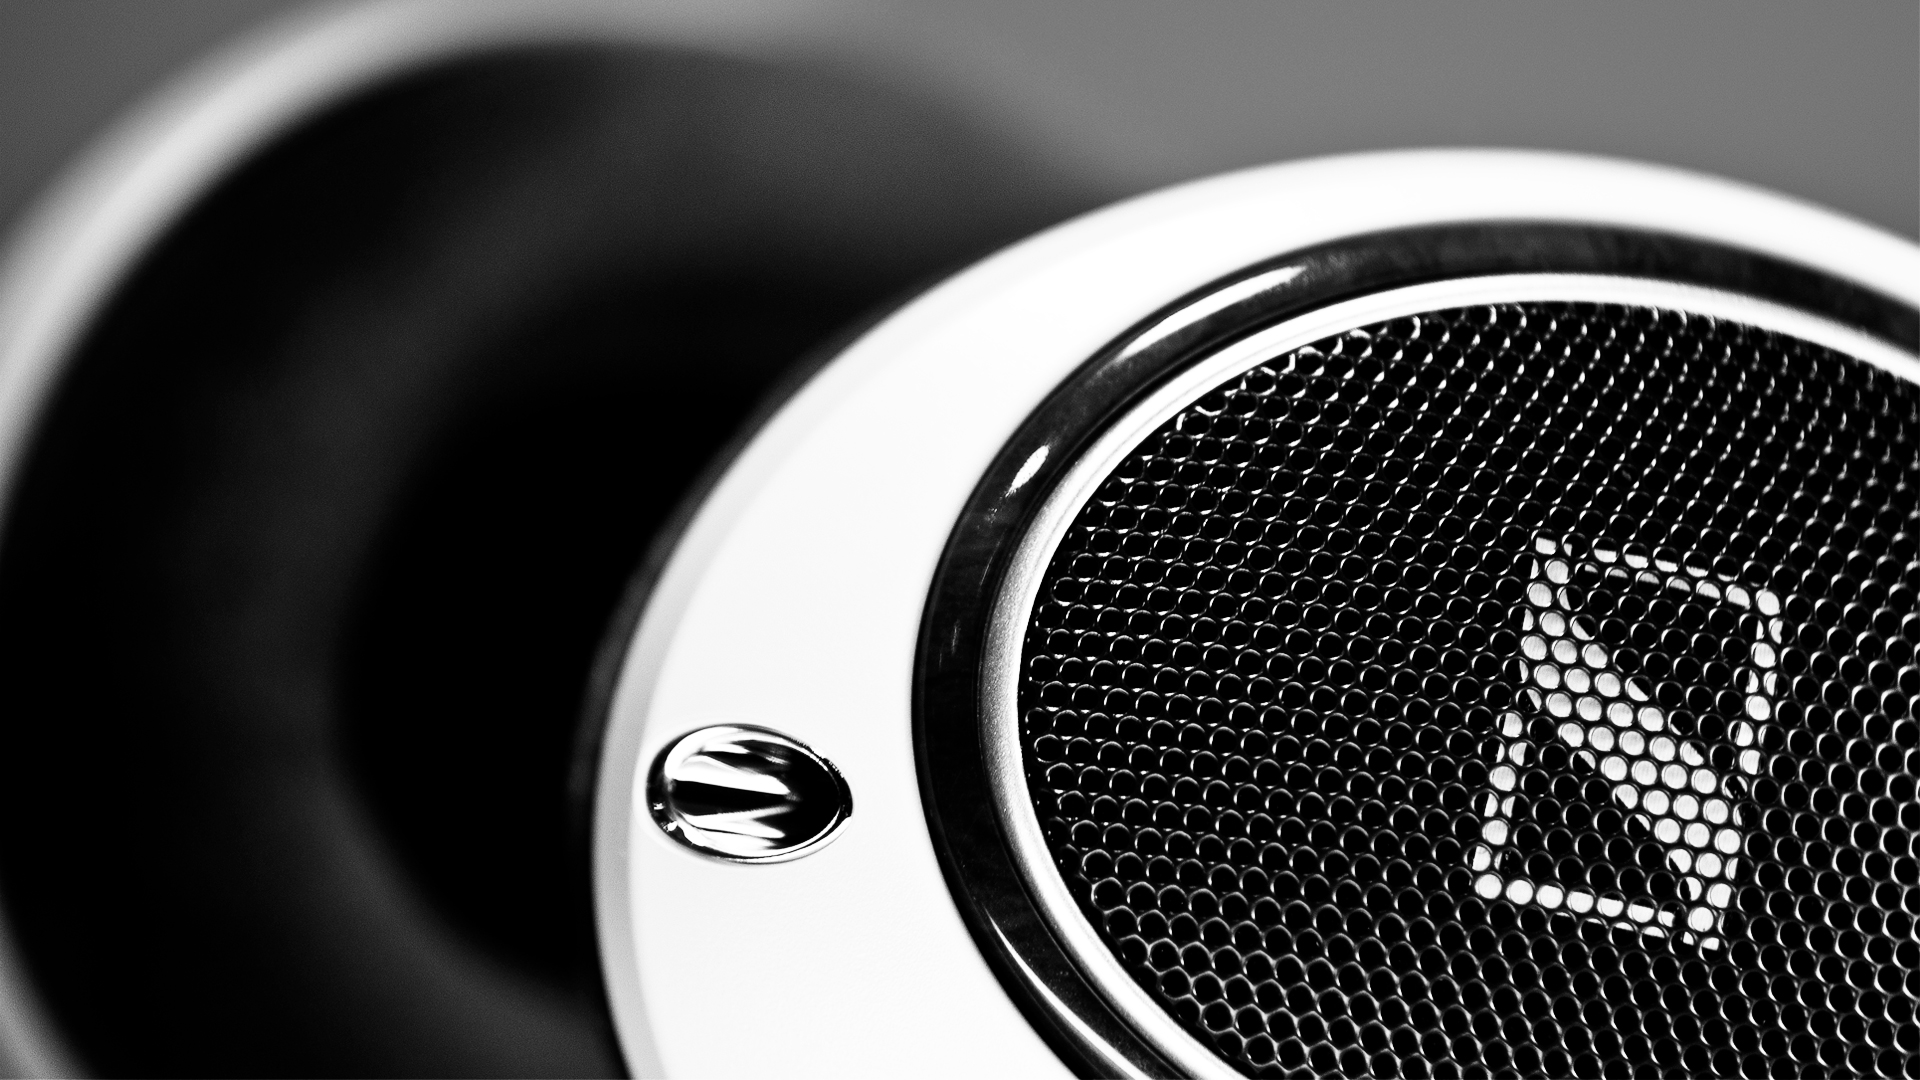 Wordpress Blog Bilder 11 Hd Sennheiser Headphones Wallpapers Hdwallsource